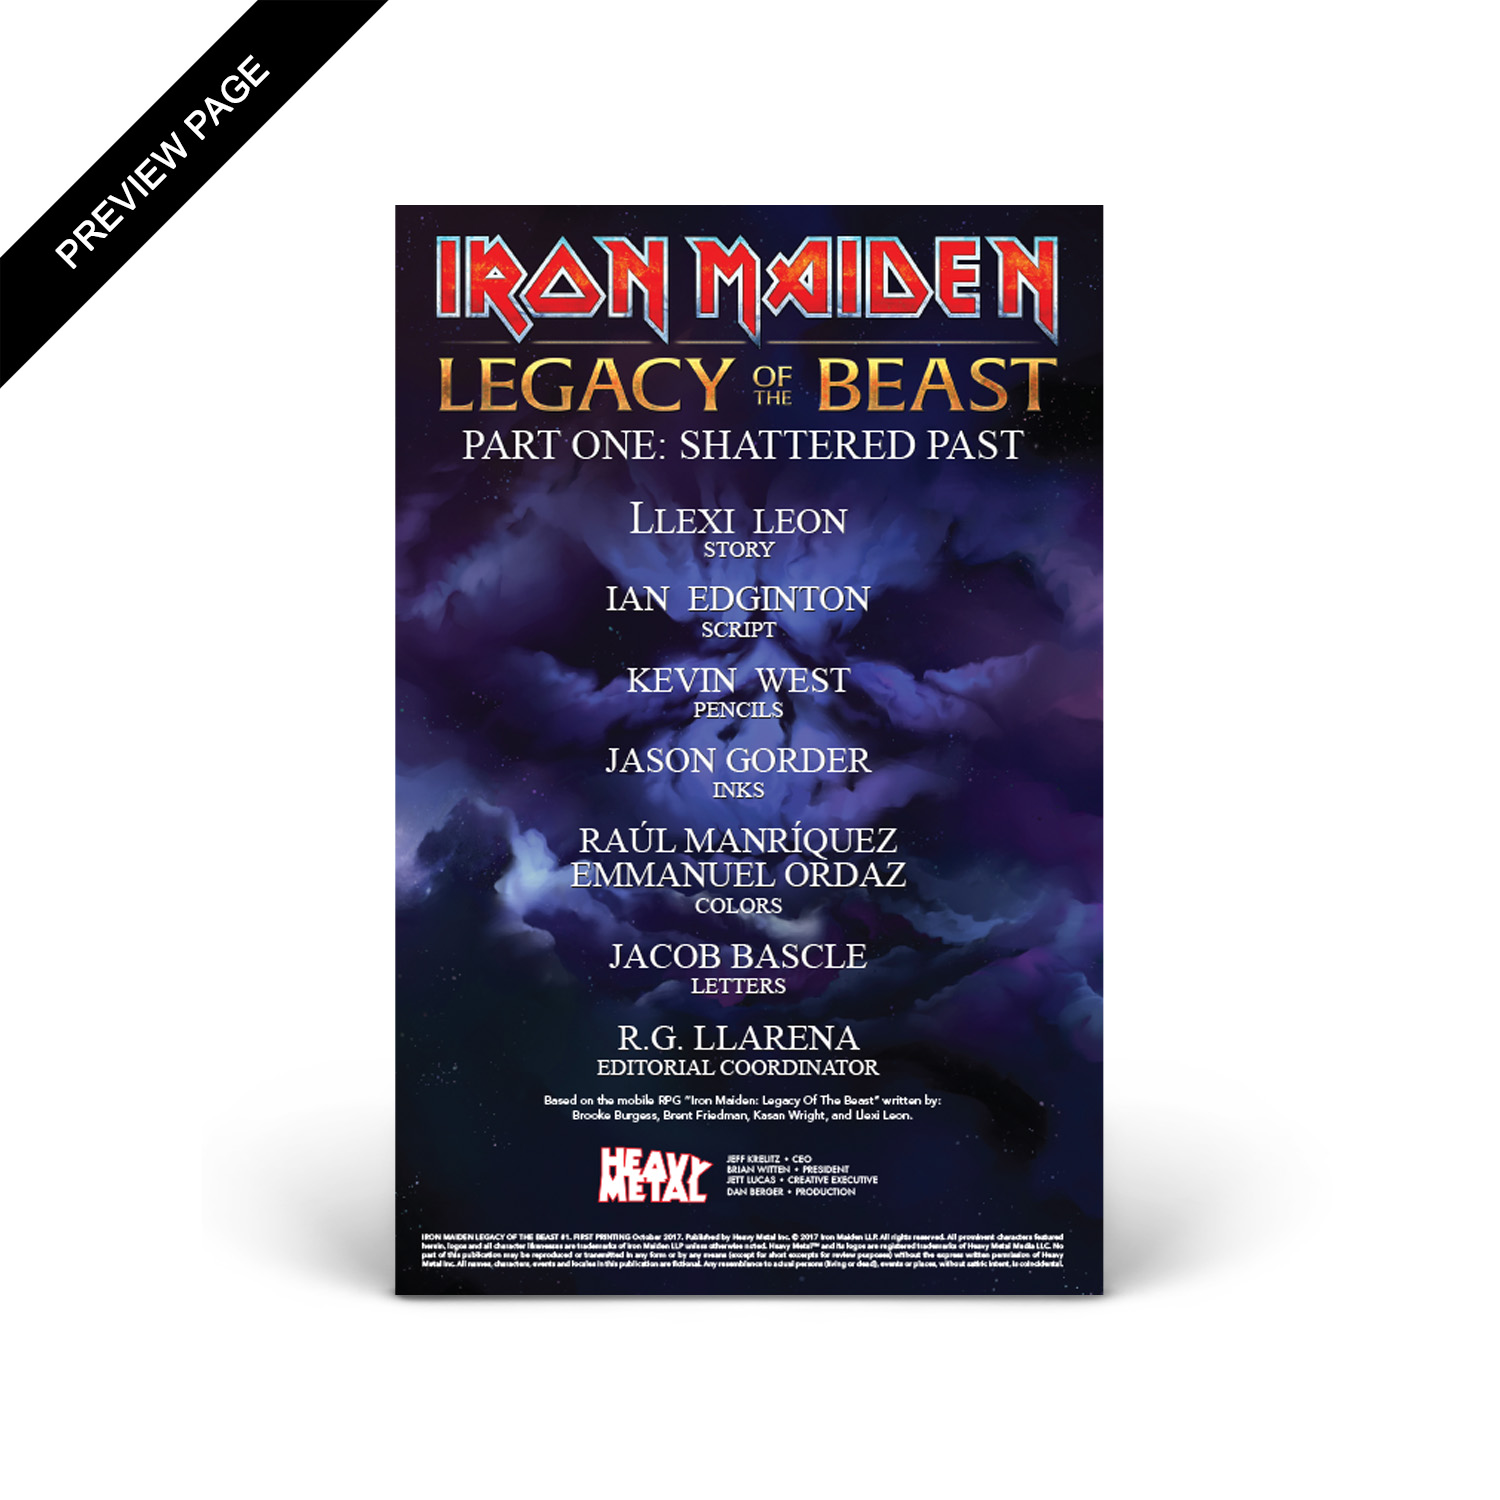 Iron Maiden - Legacy of the Beast - Volume 1 - Issue #1 - Cover A